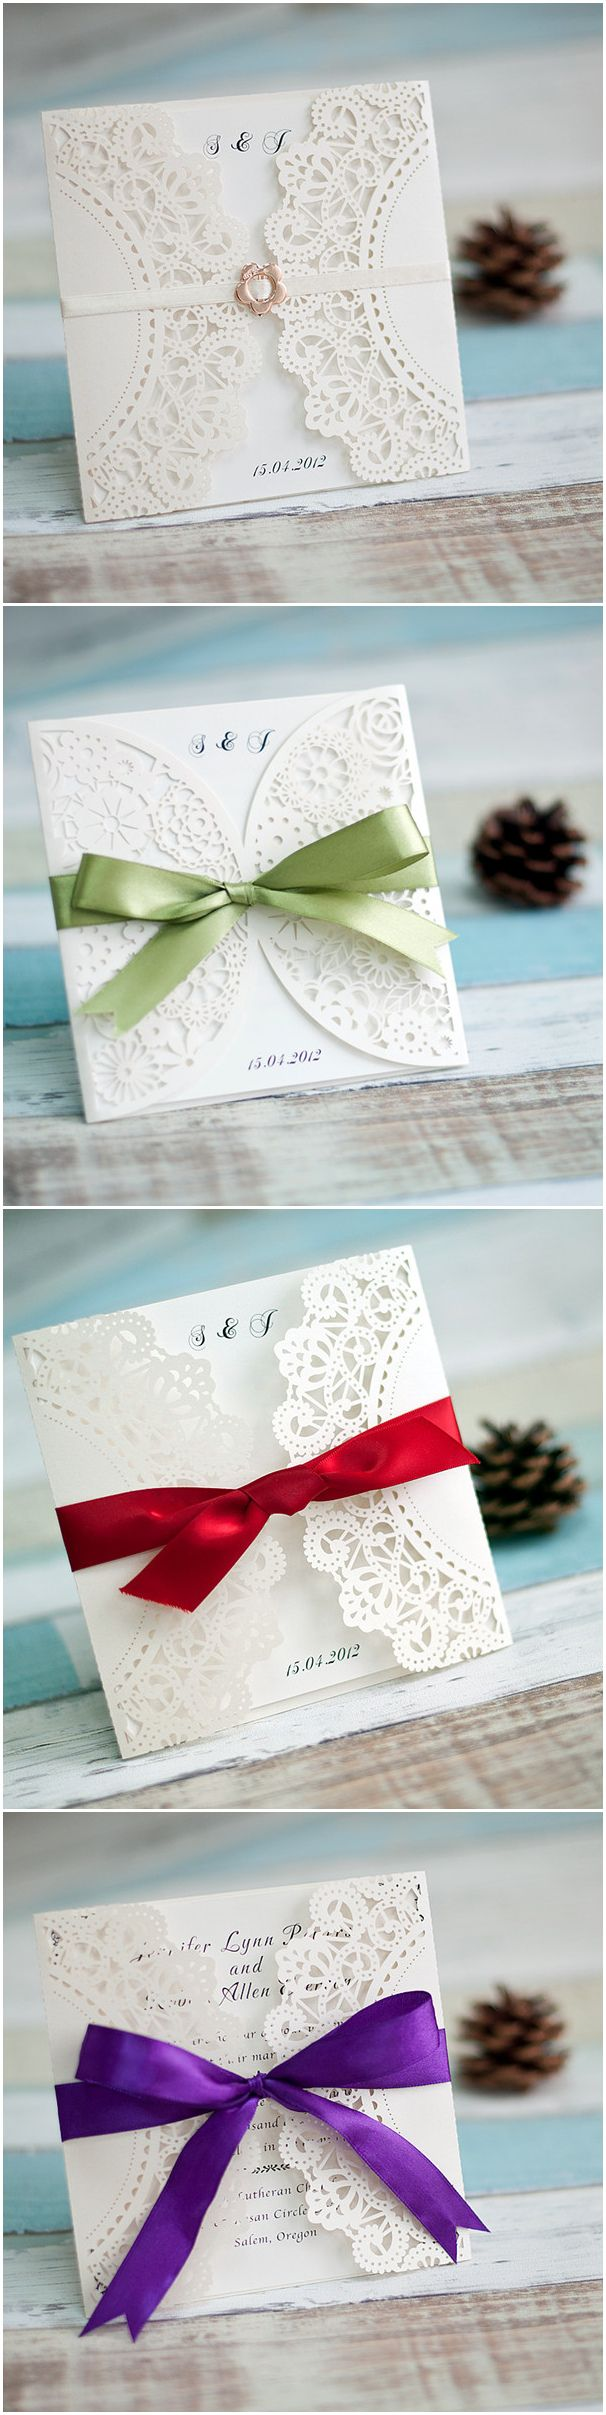 elegant diy laser cut wedding invitations with custom ribbons